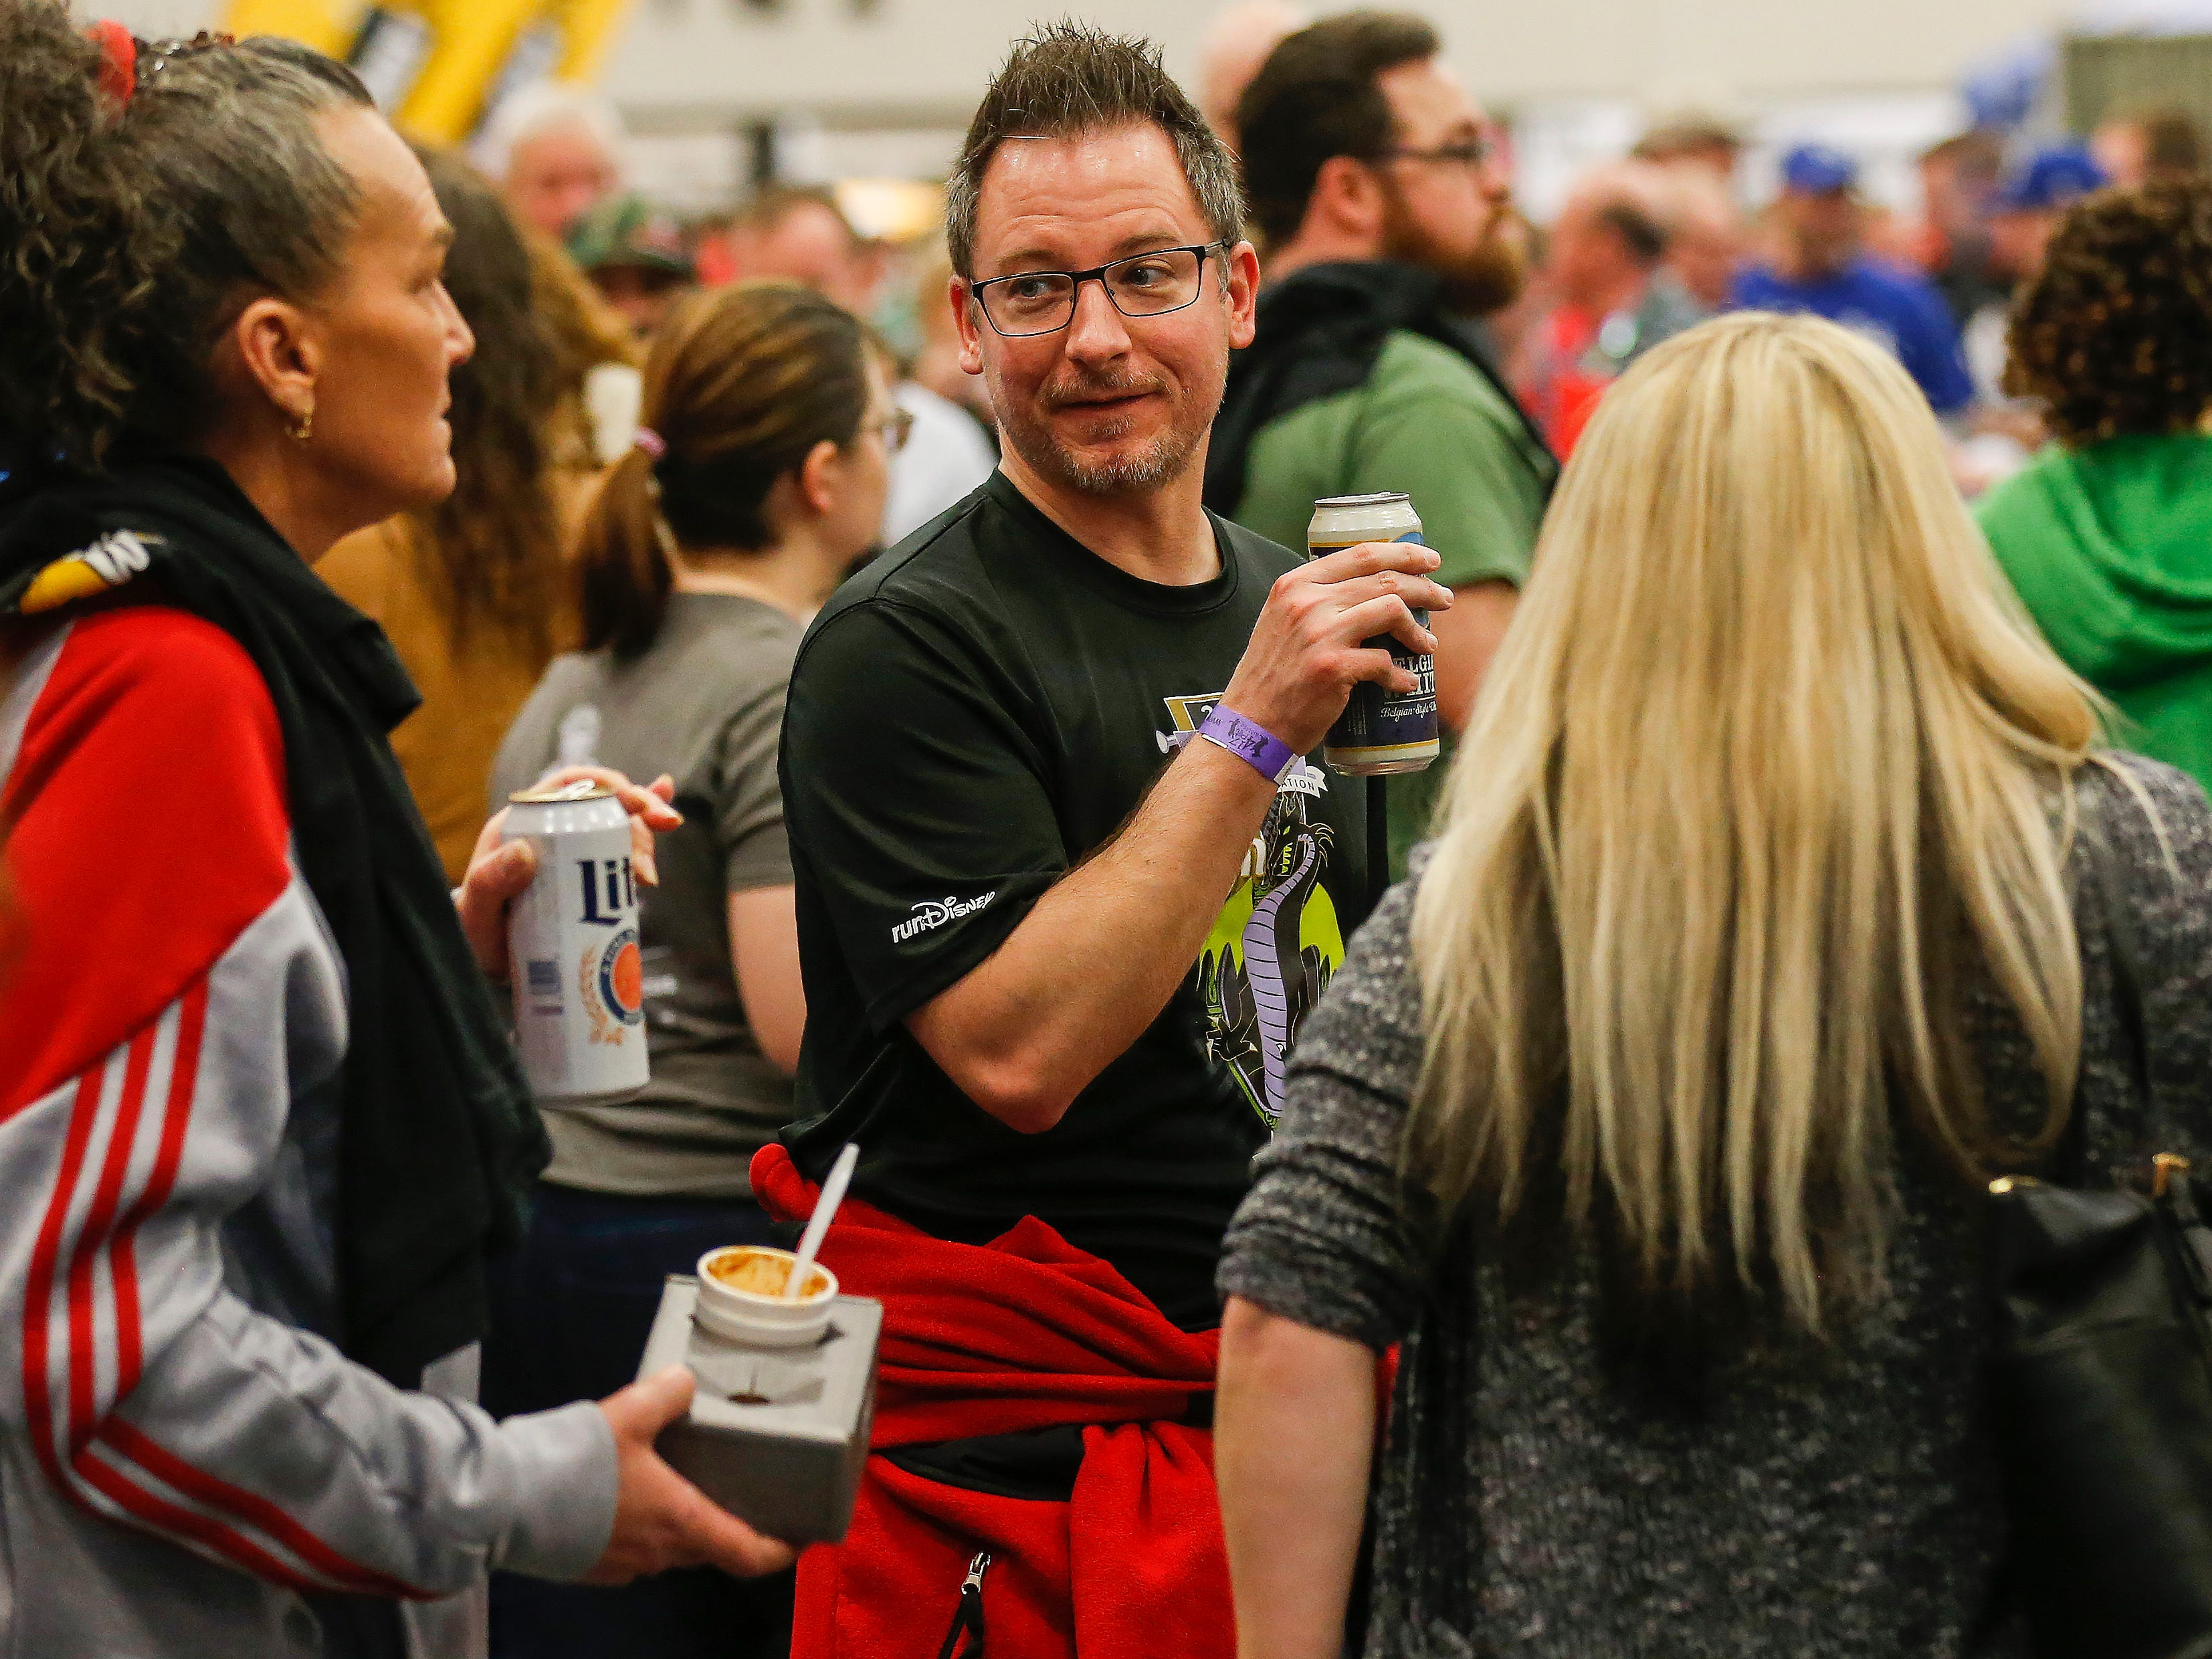 Scenes from the 2019 Sertoma Chili Cook-Off at the Springfield Expo Center on Saturday, Feb. 23, 2019.